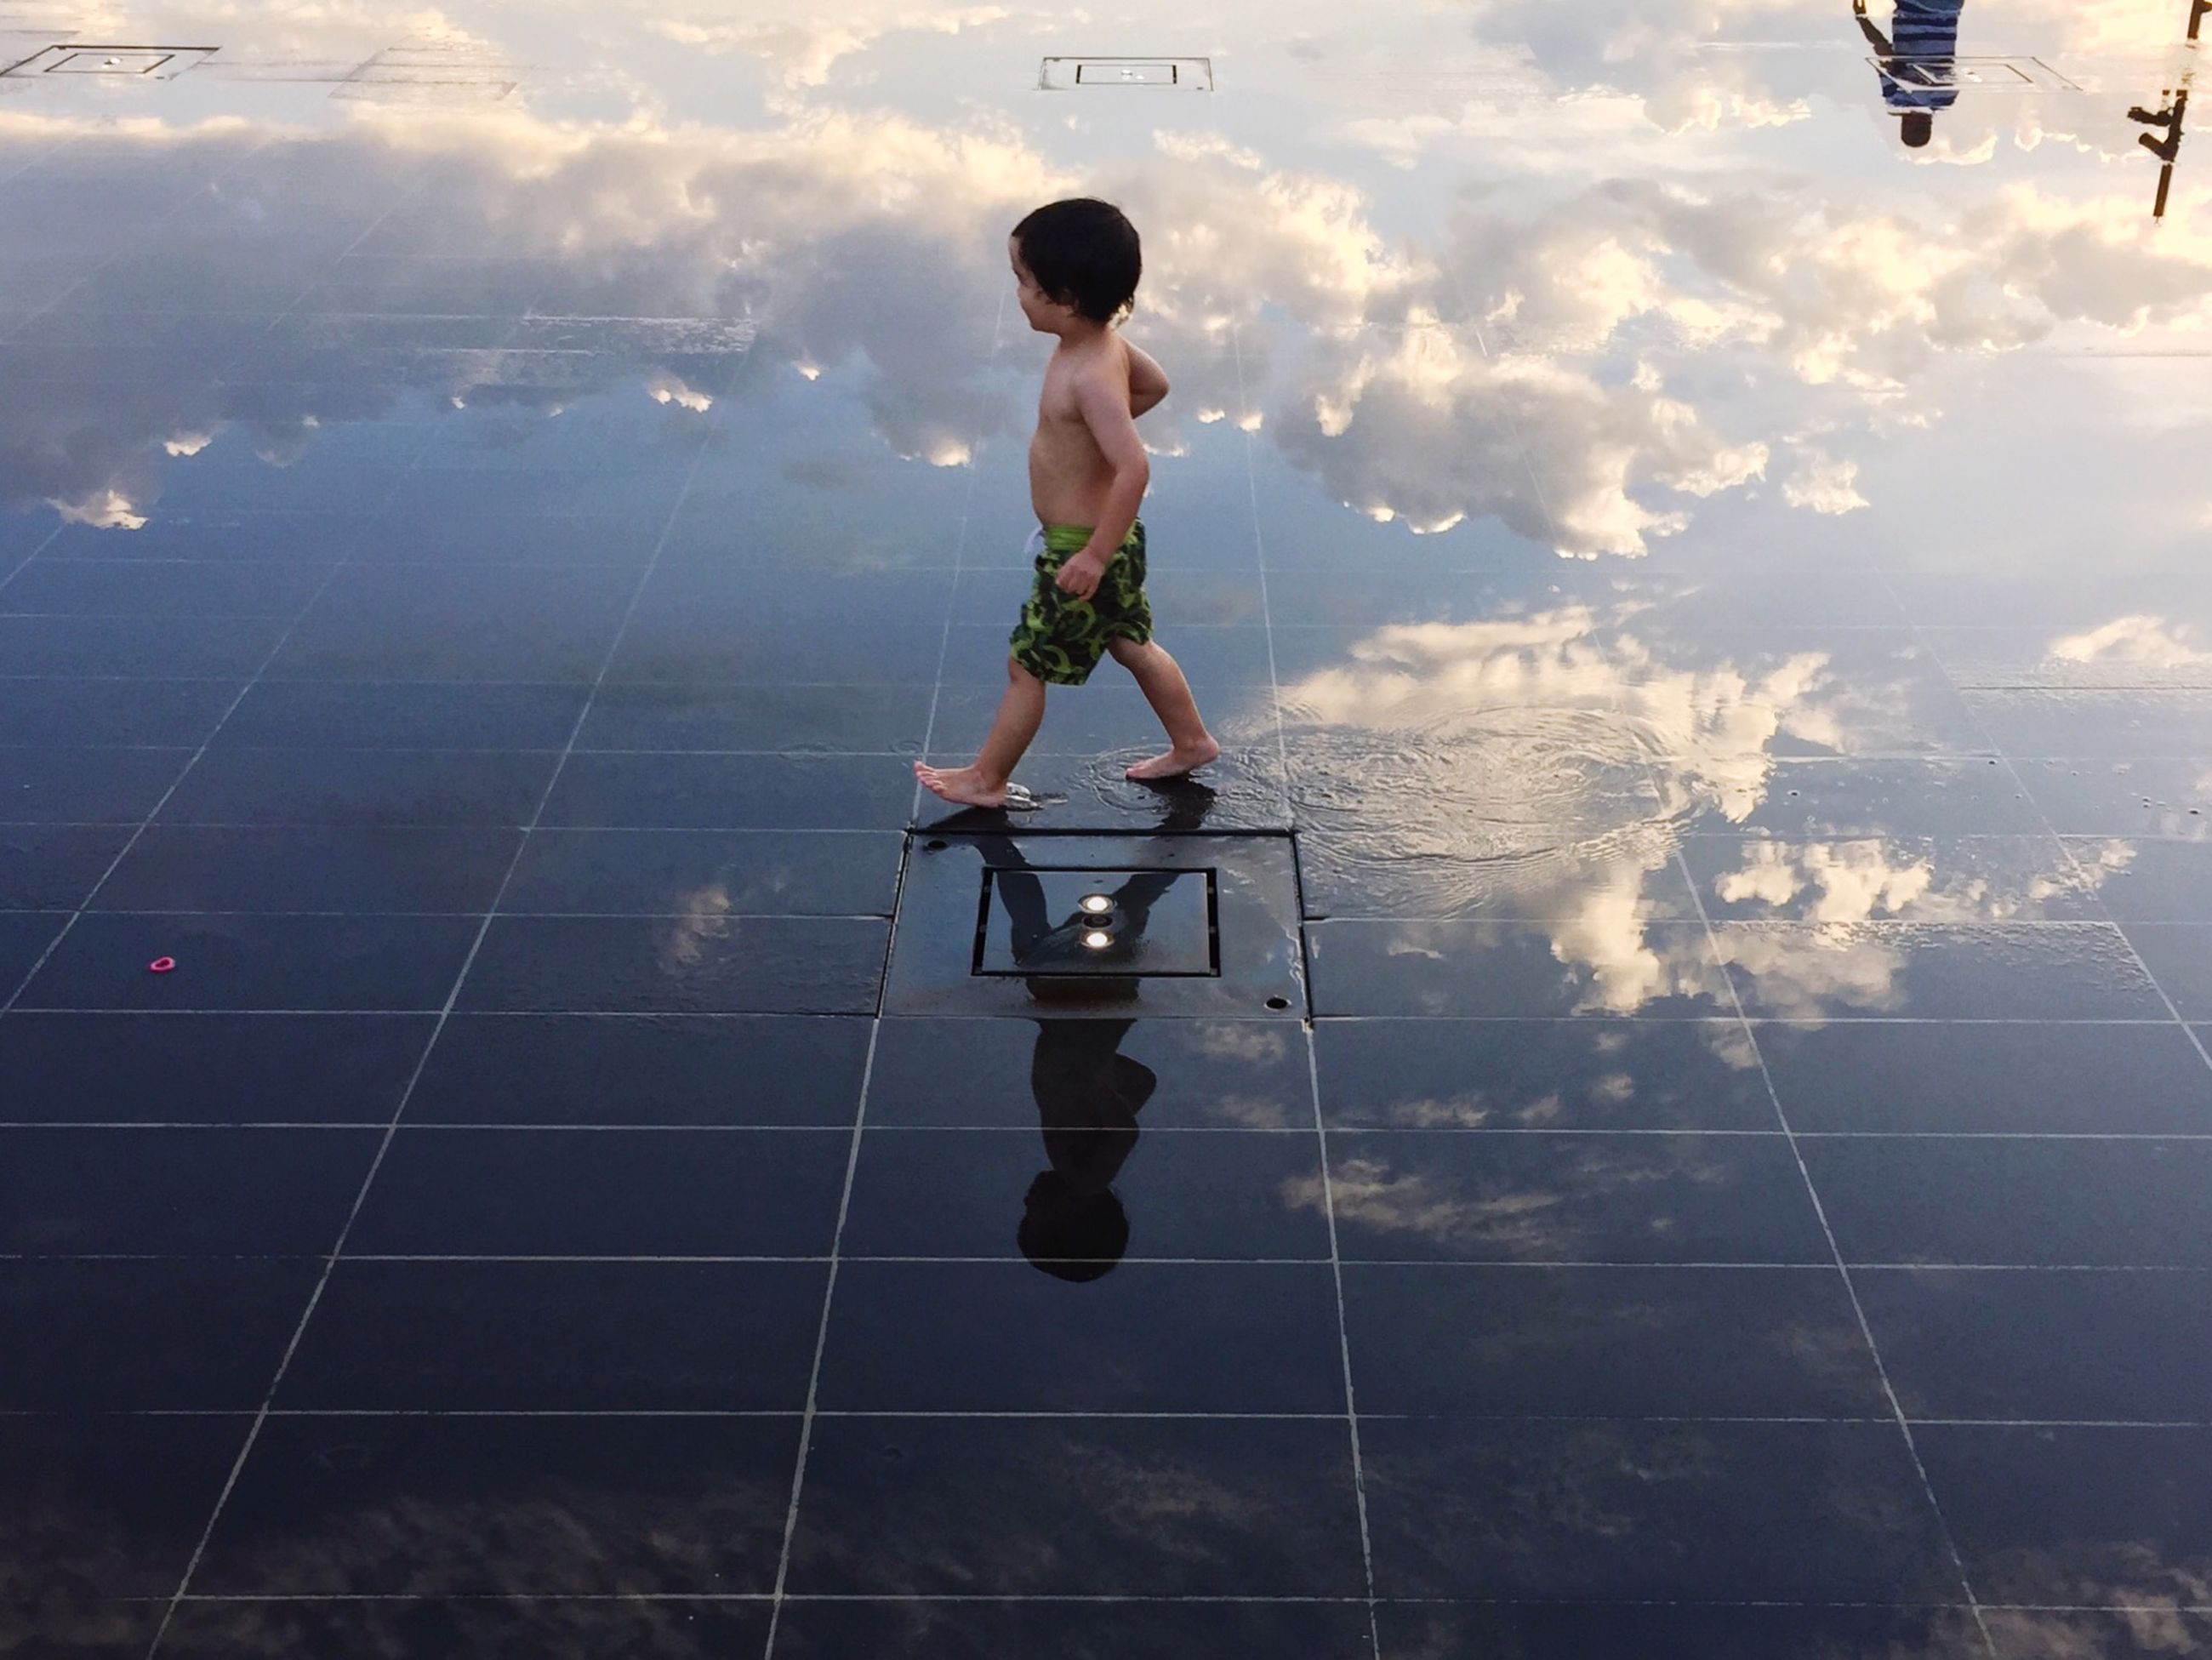 full length, lifestyles, leisure activity, sky, cloud - sky, water, childhood, boys, casual clothing, standing, fun, reflection, day, person, playing, high angle view, men, enjoyment